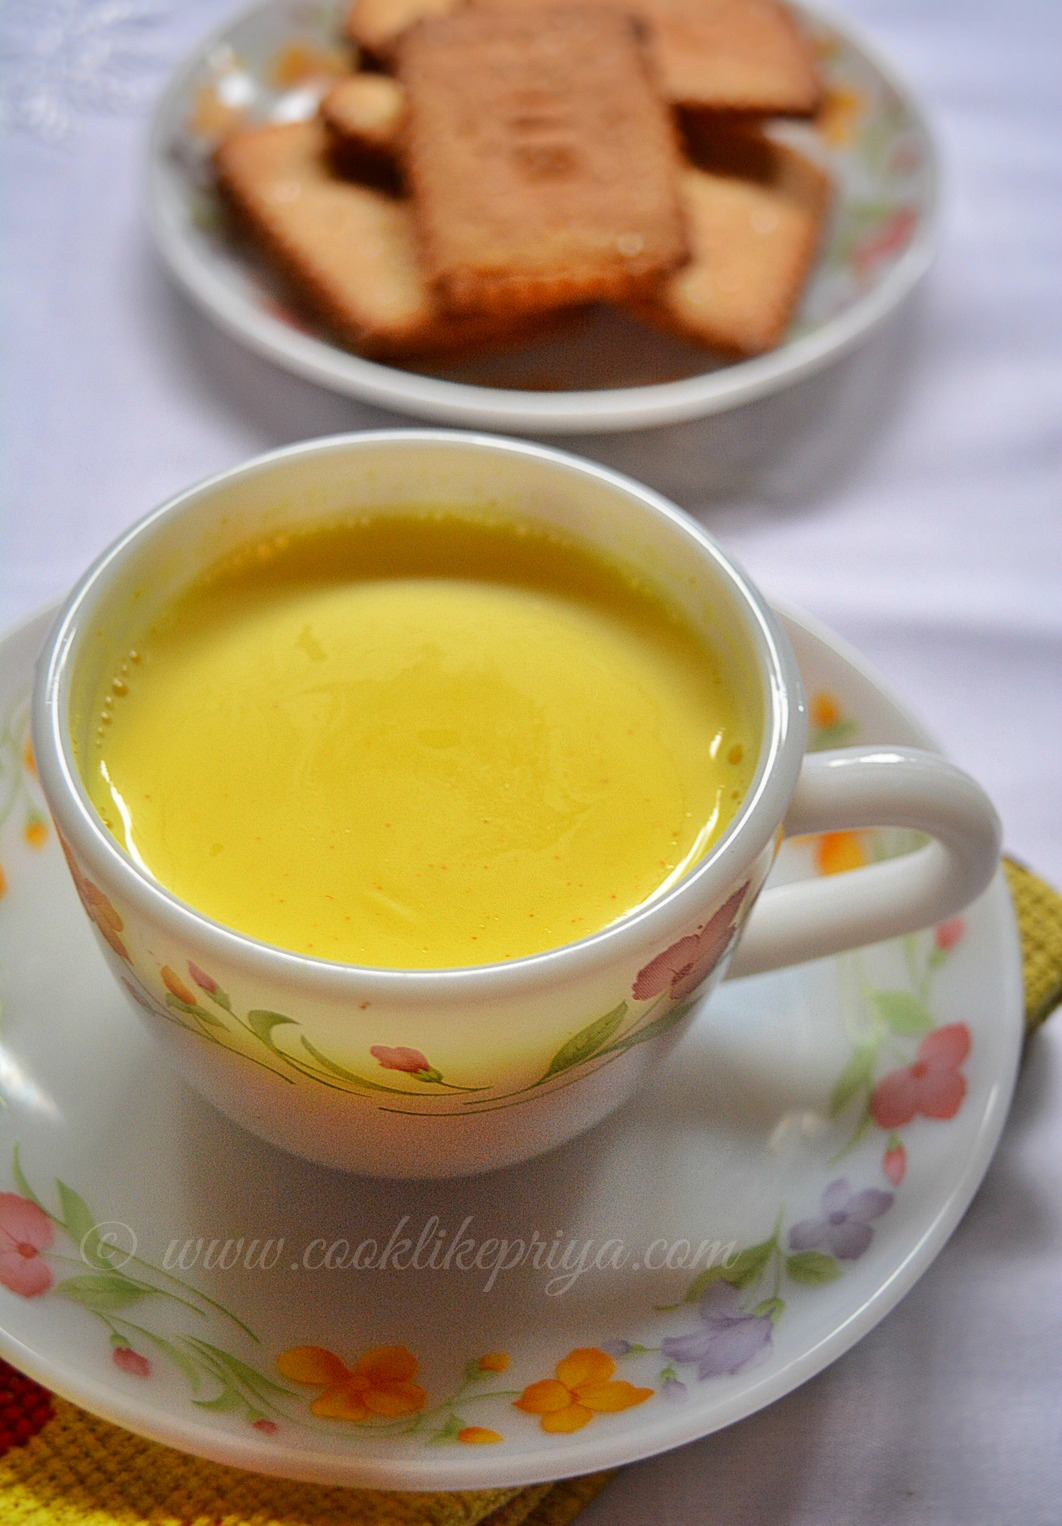 Spiced Turmeric Milk Recipe